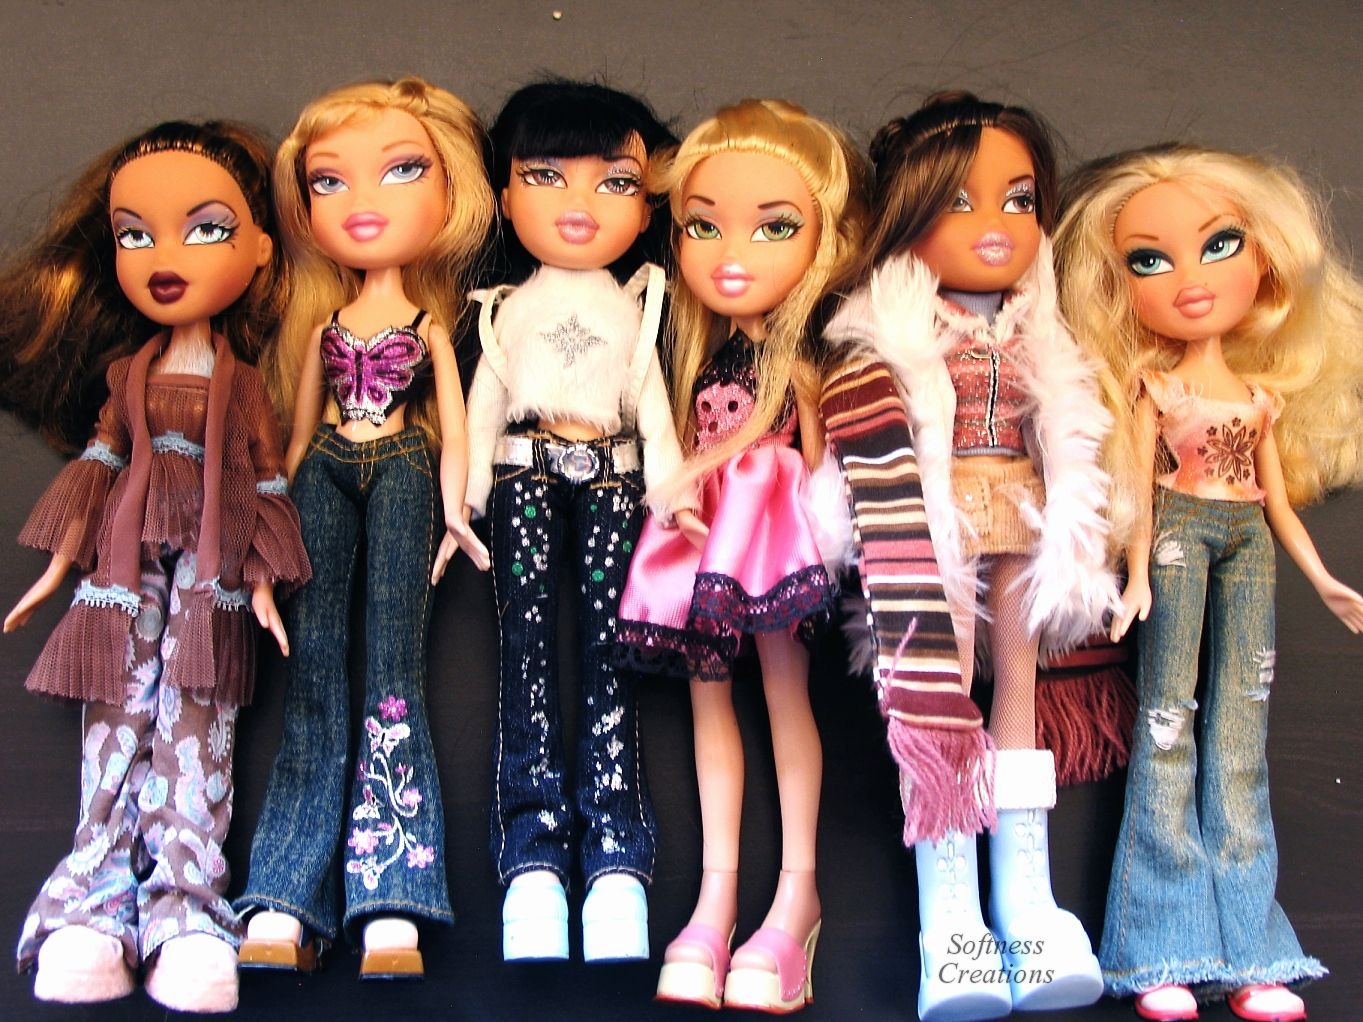 Uncategorized Bratz Girl bratz dolls history characteristics and more